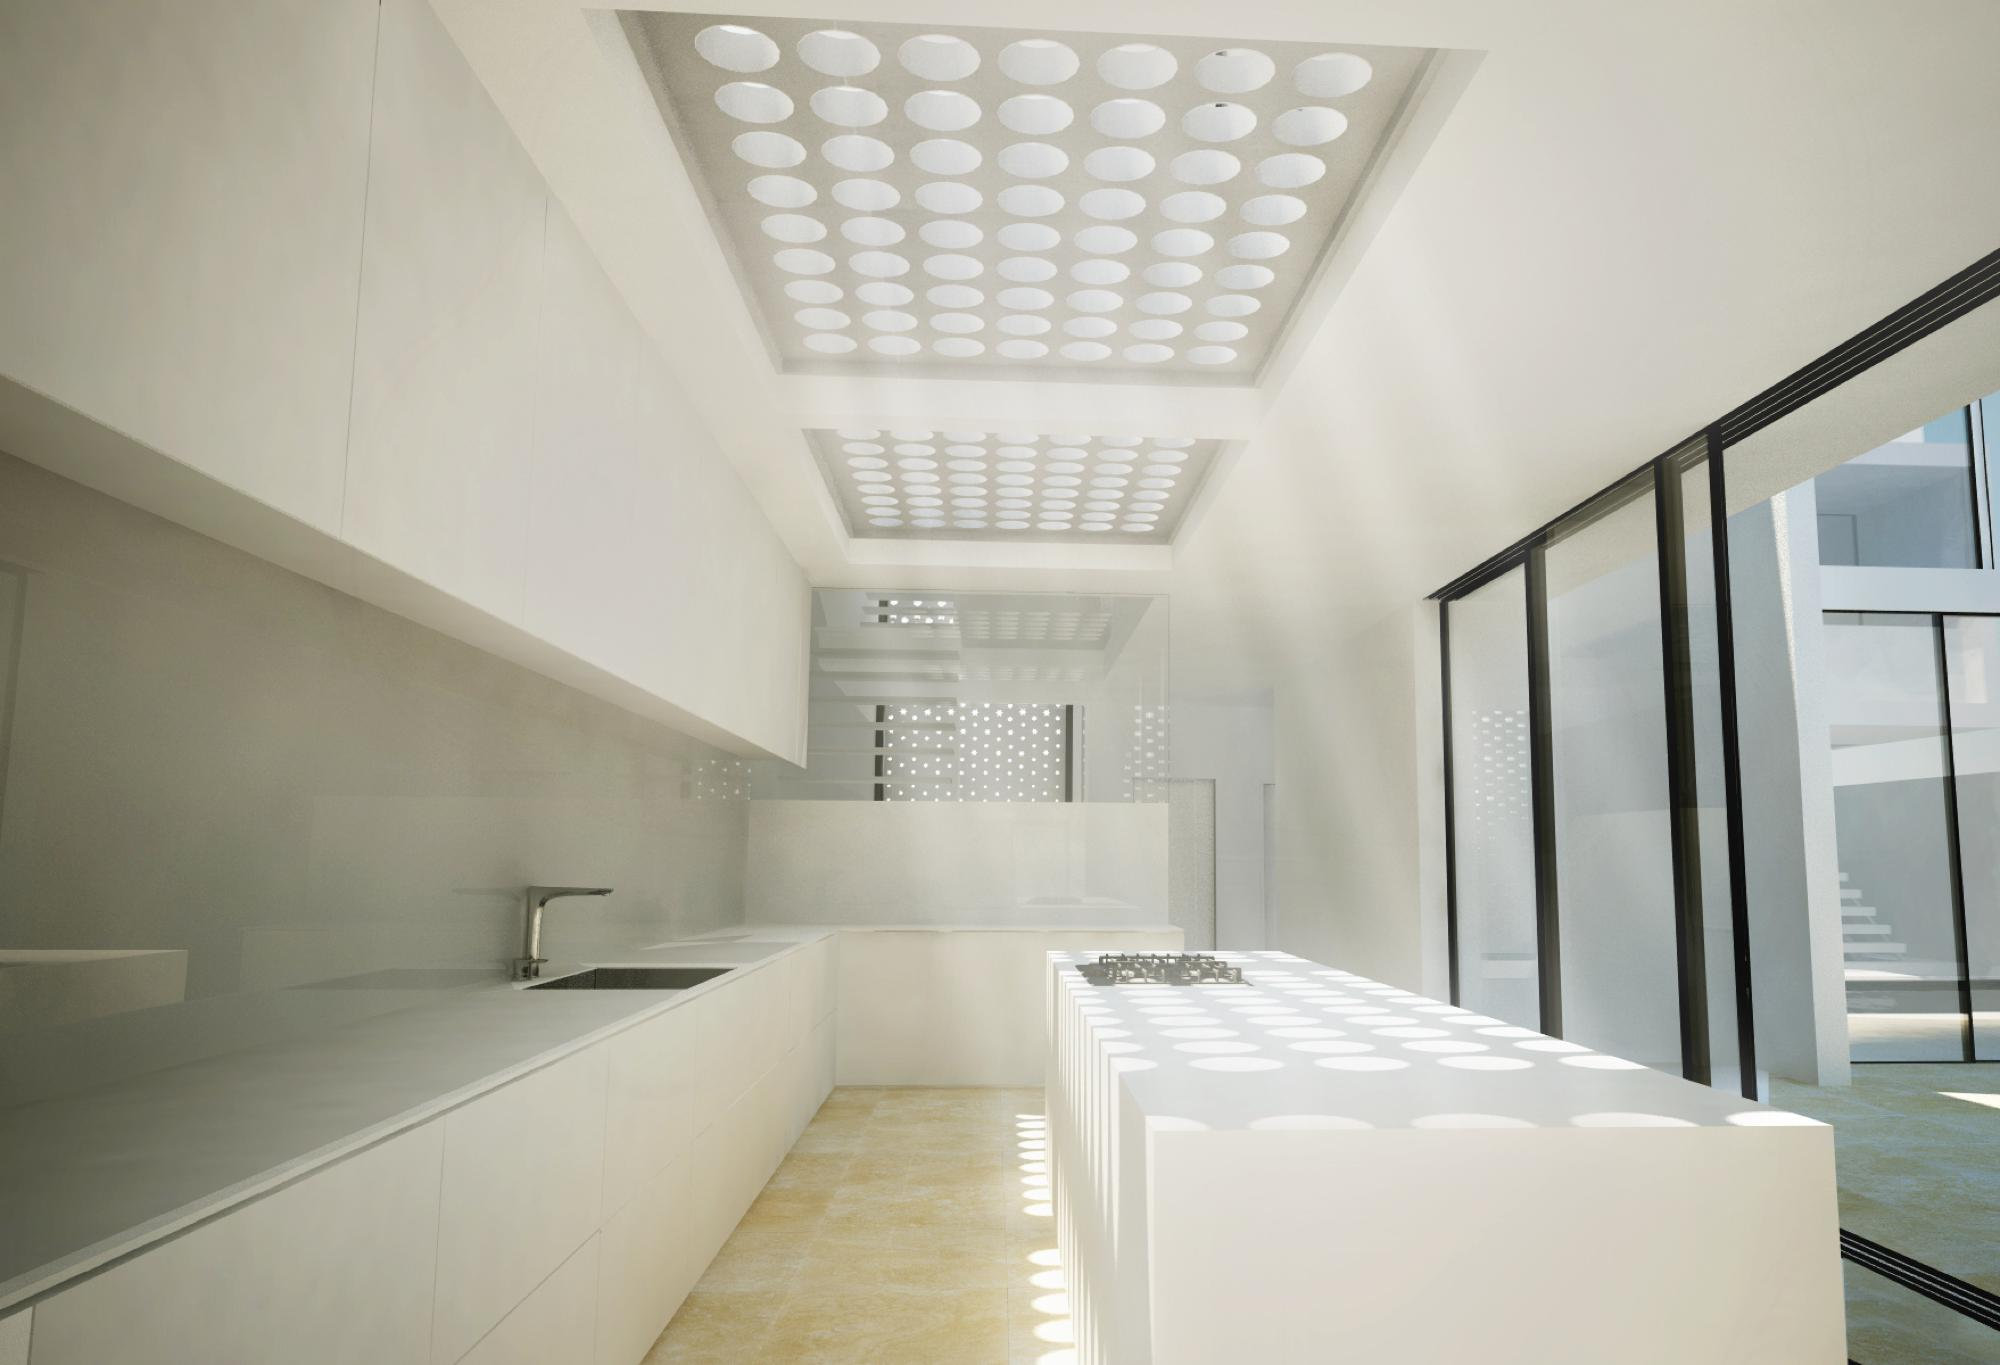 Jeddah Townhouses Kitchen Skylight